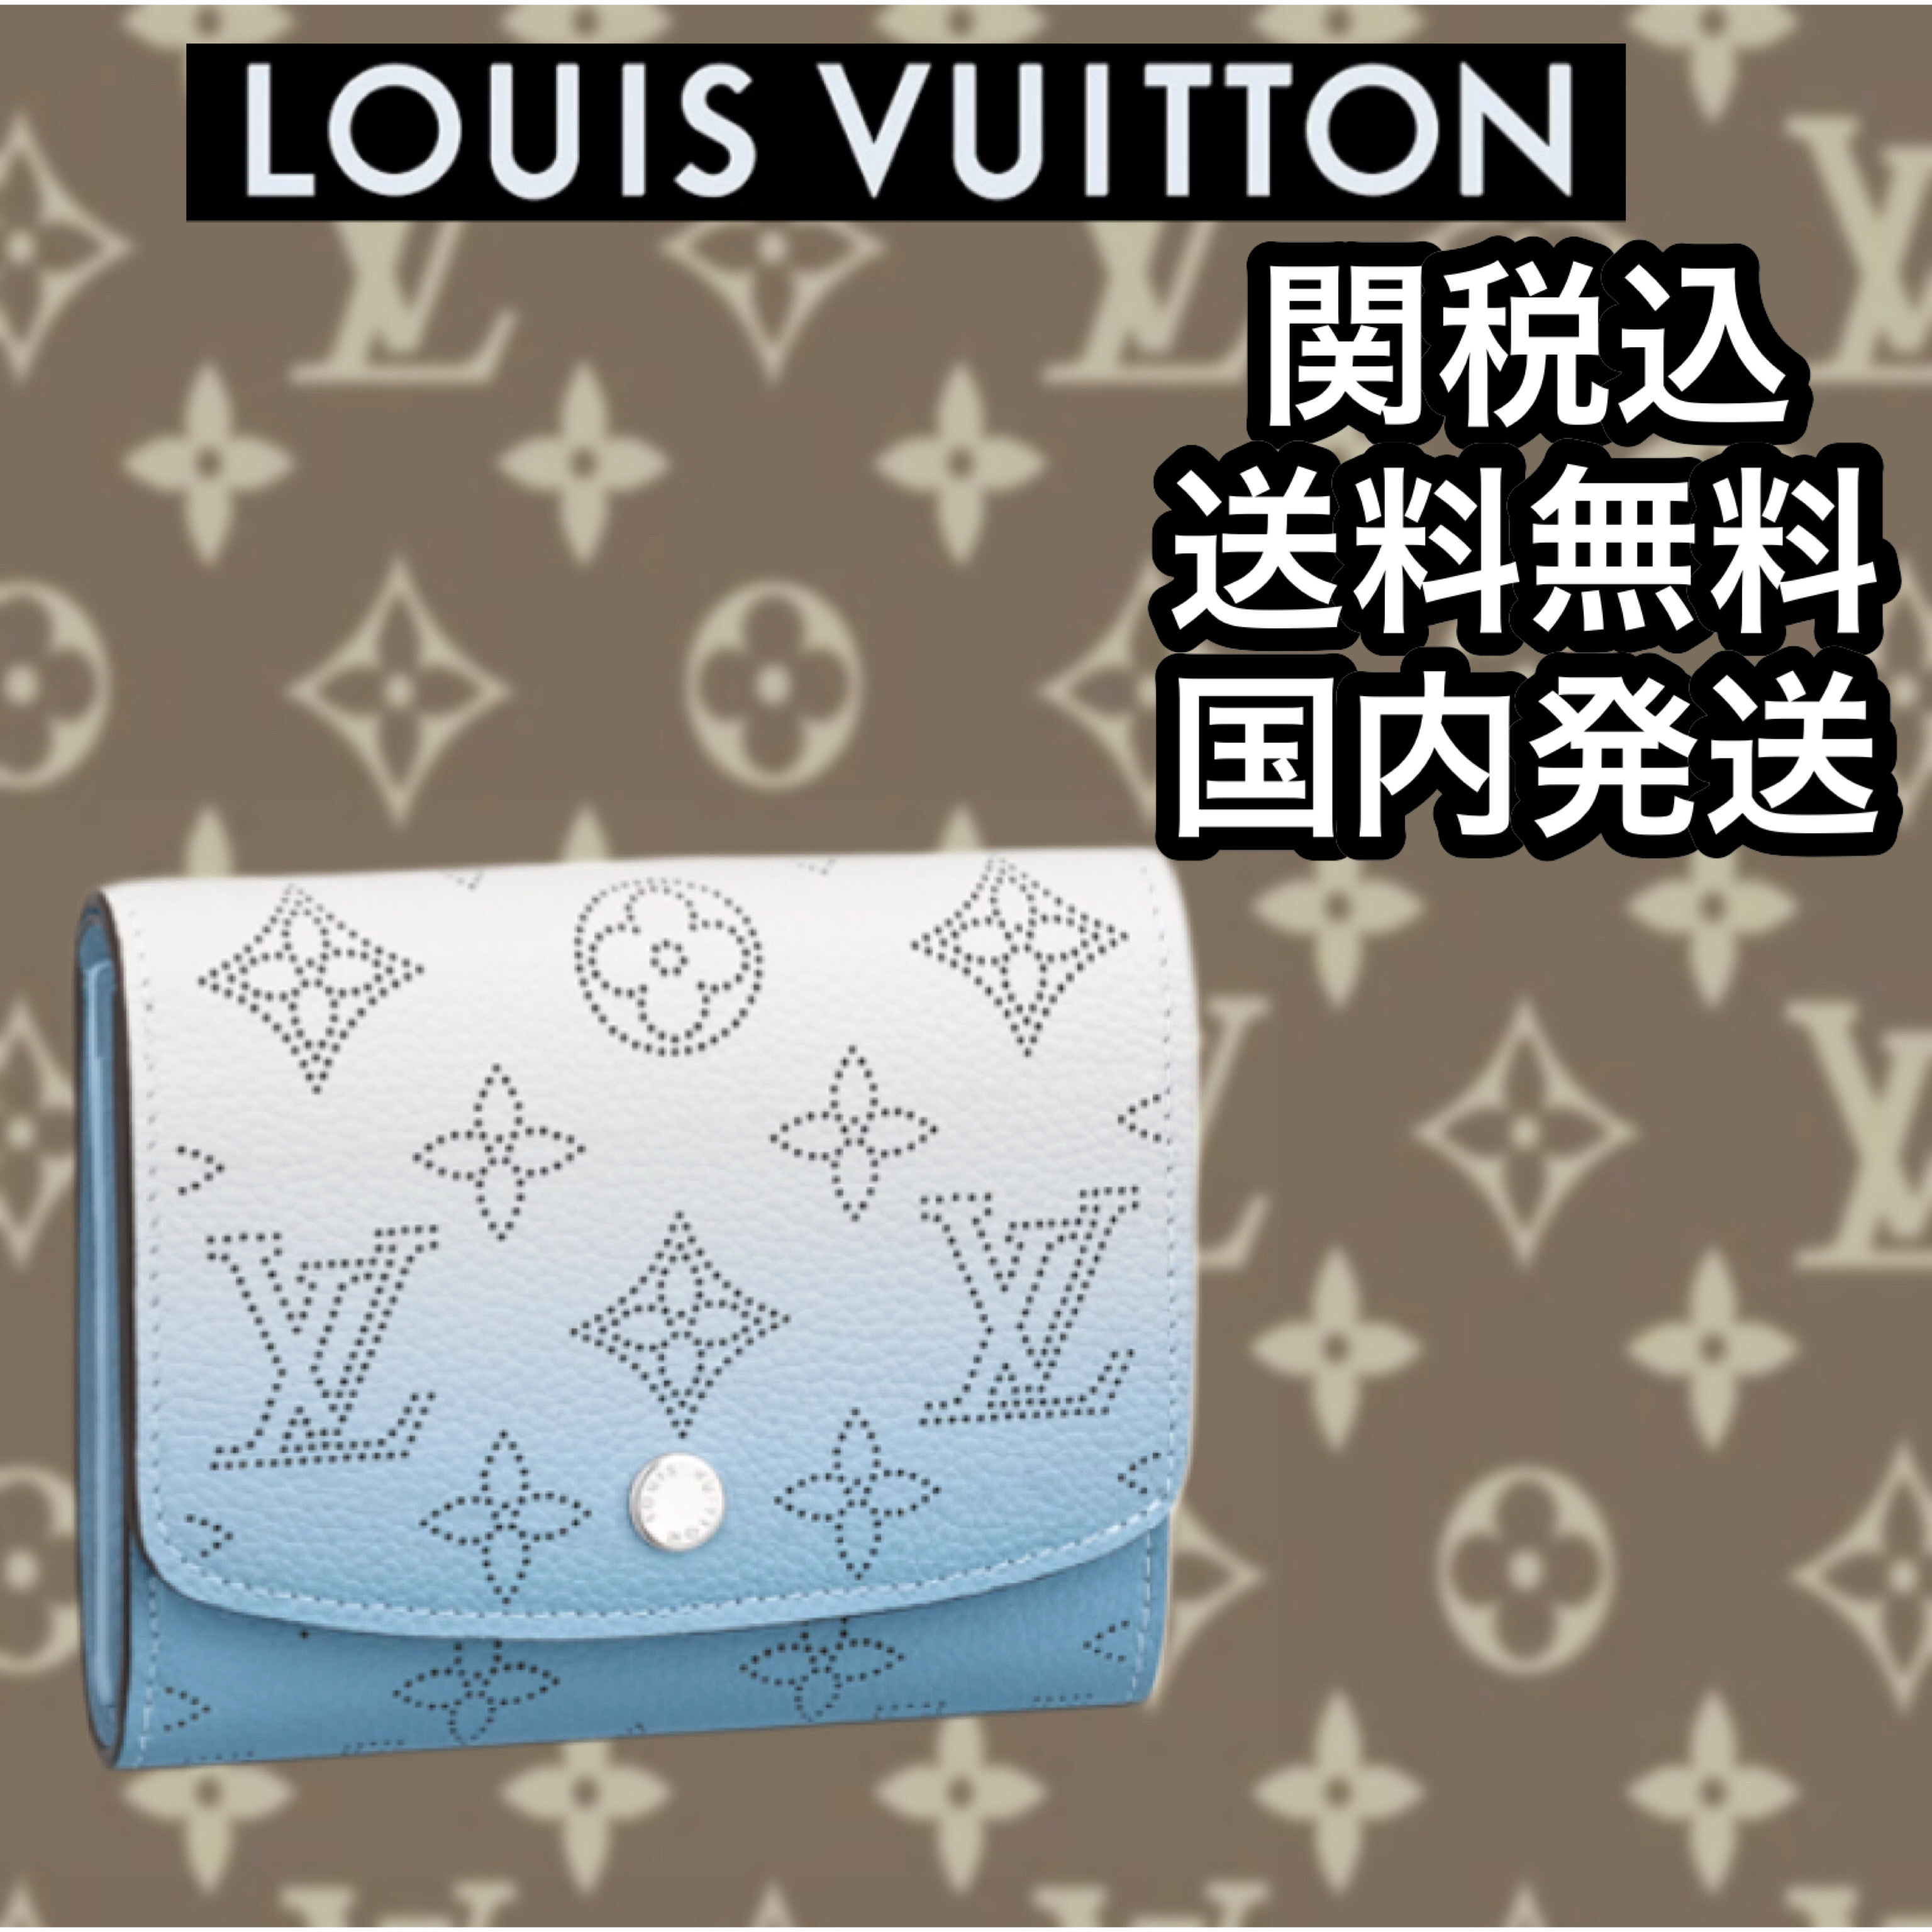 21SS Louis Vuittonポルトフォイユ イリスコンパクト (Louis Vuitton/折りたたみ財布) M80492